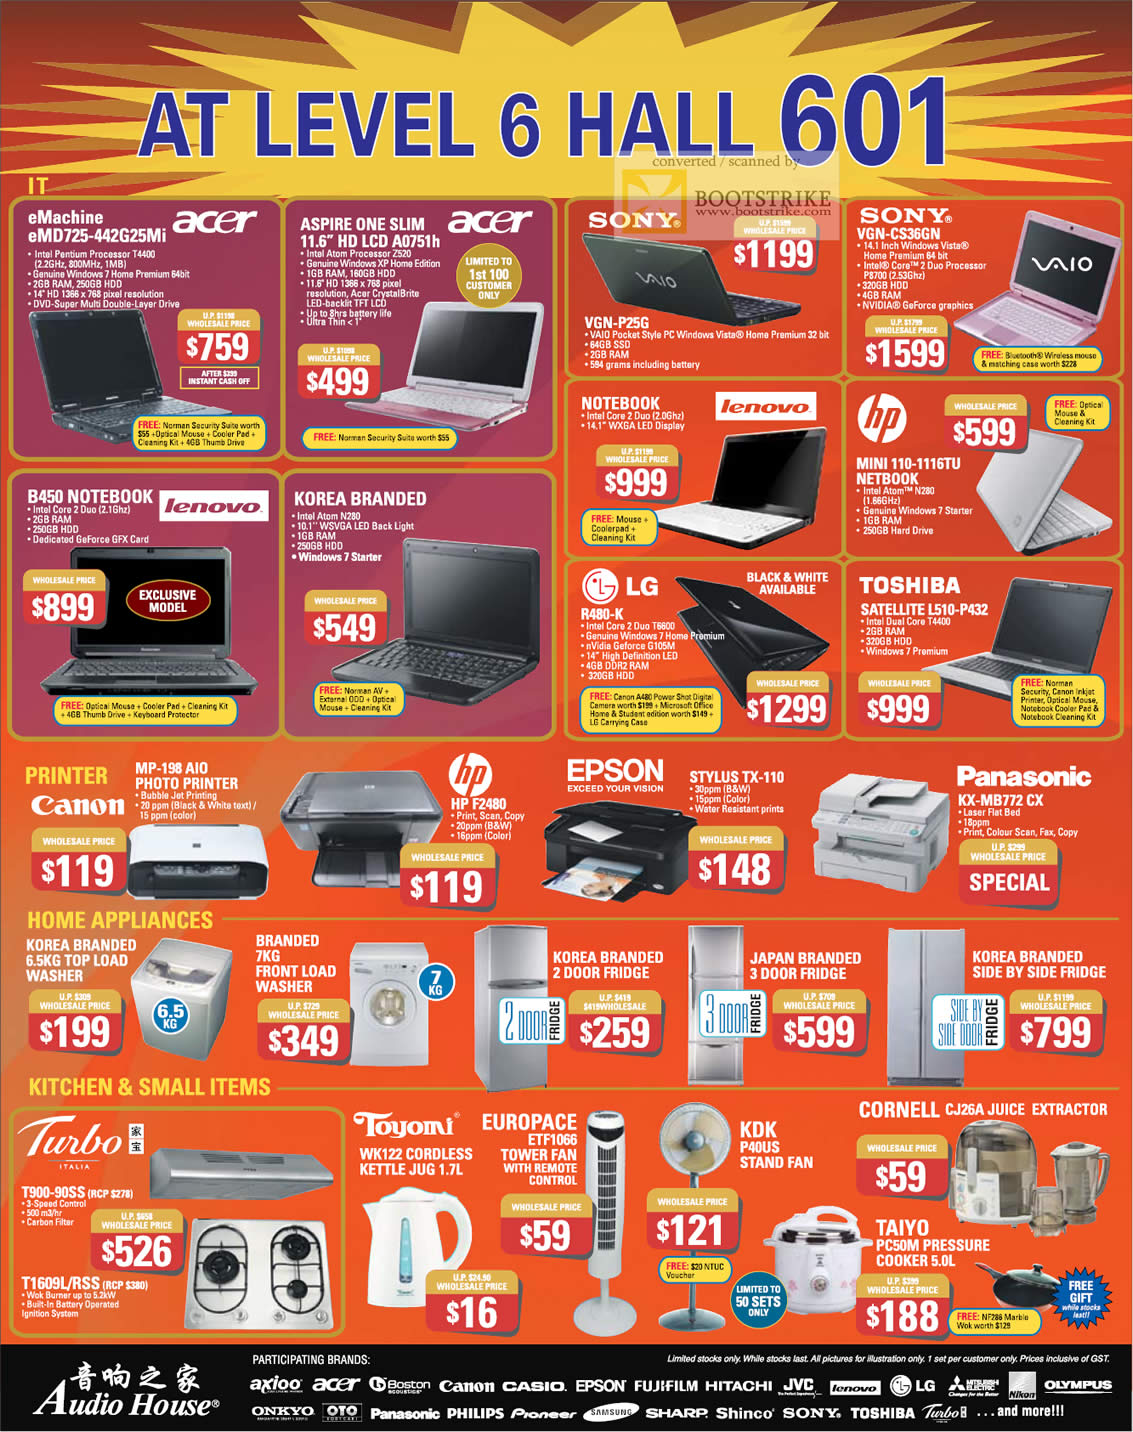 c3 clearance sales notebooks printers home appliances